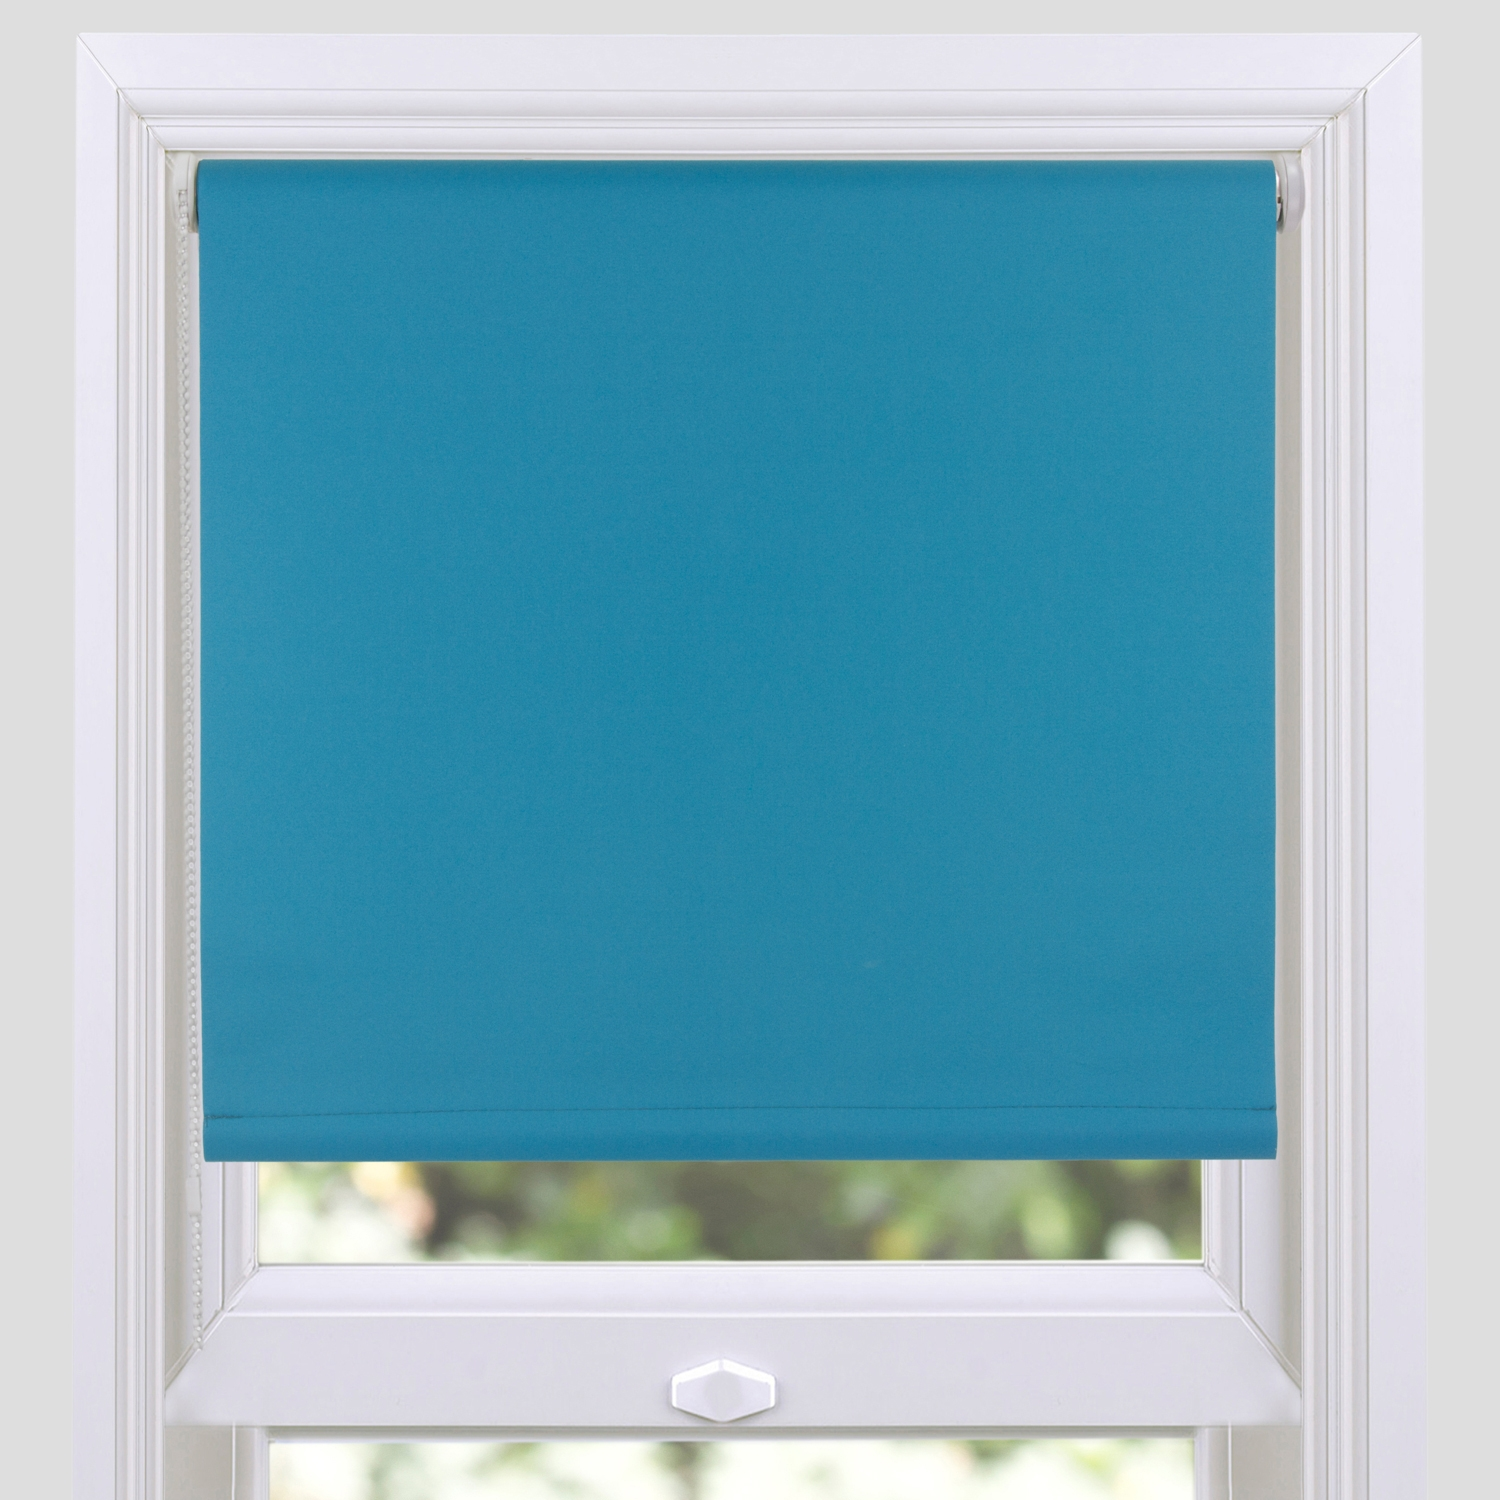 Contemporary Blackout Roller Blinds Throughout Thermal Roller Blinds (View 12 of 15)